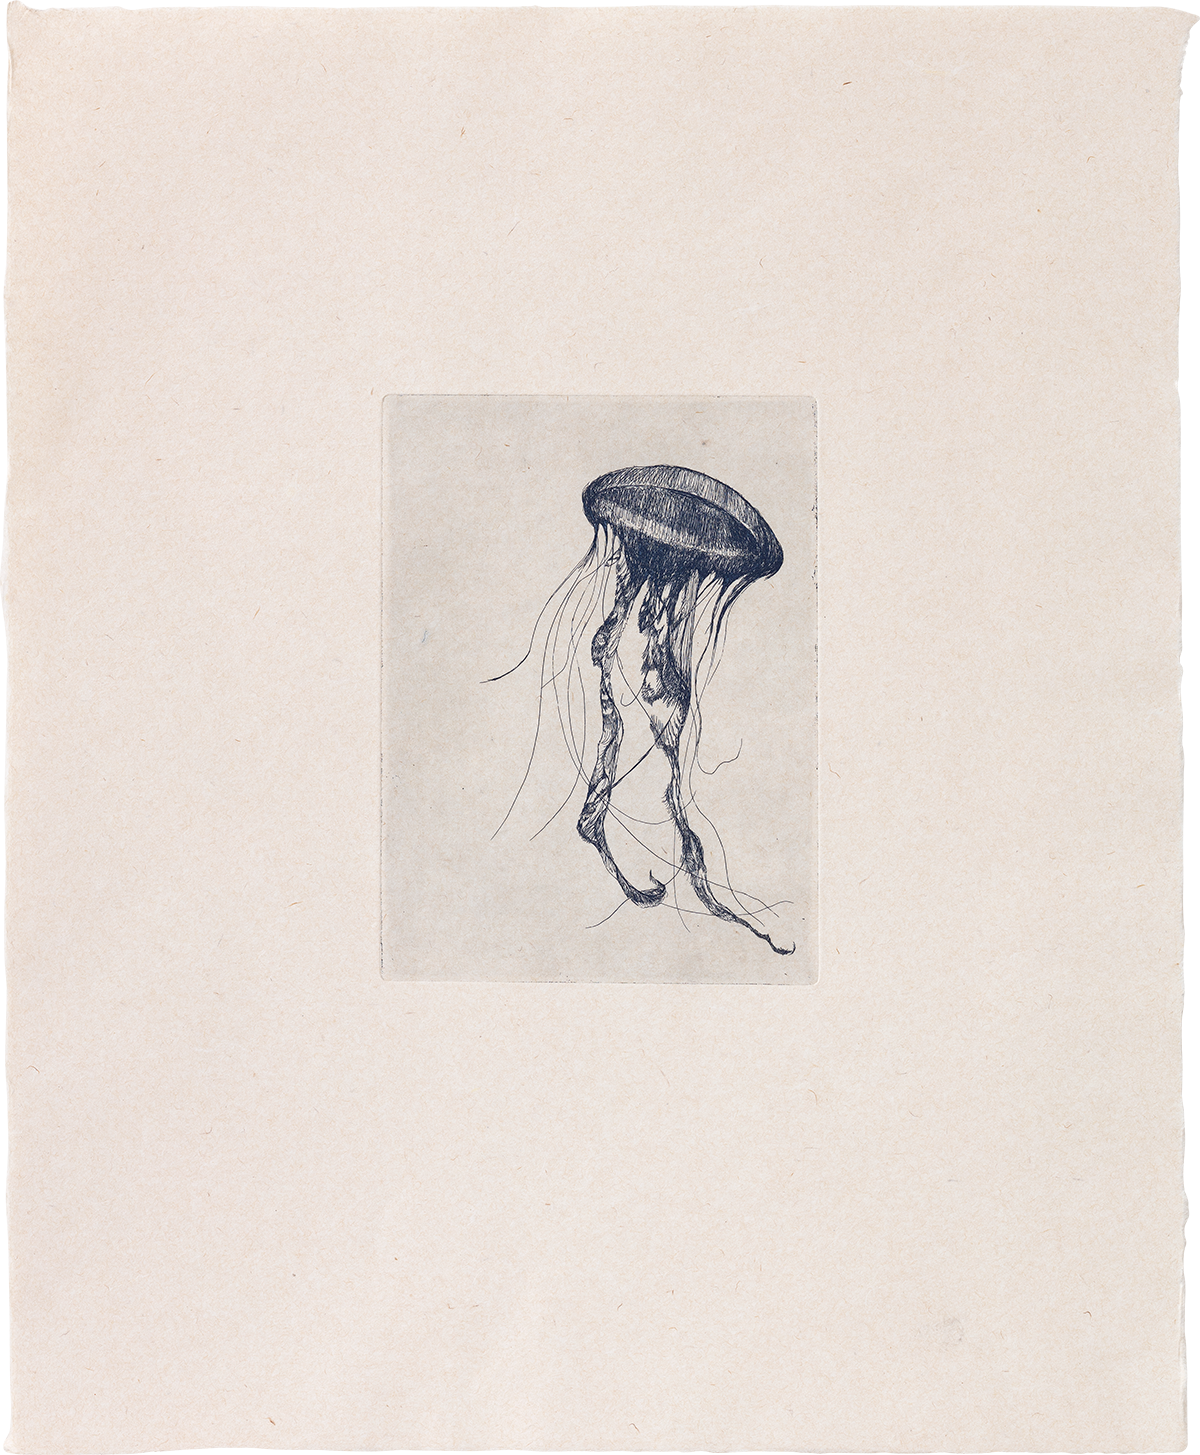 Totem Jellyfish (II) - Etching